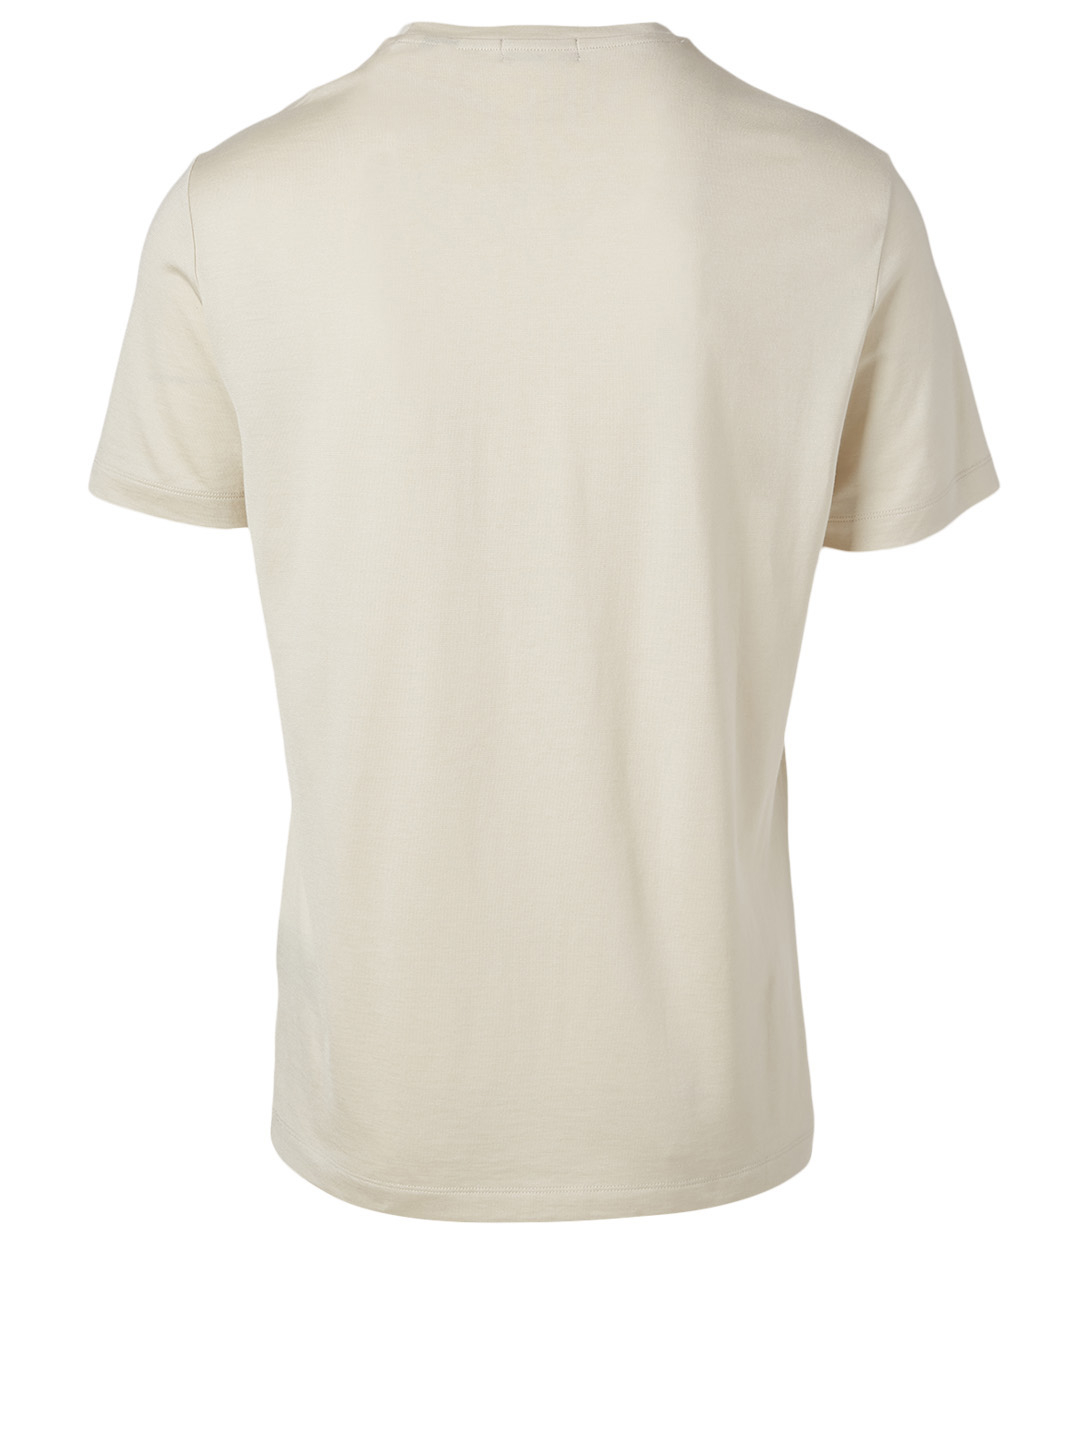 THEORY Clean Silk And Cotton T-Shirt Men's White